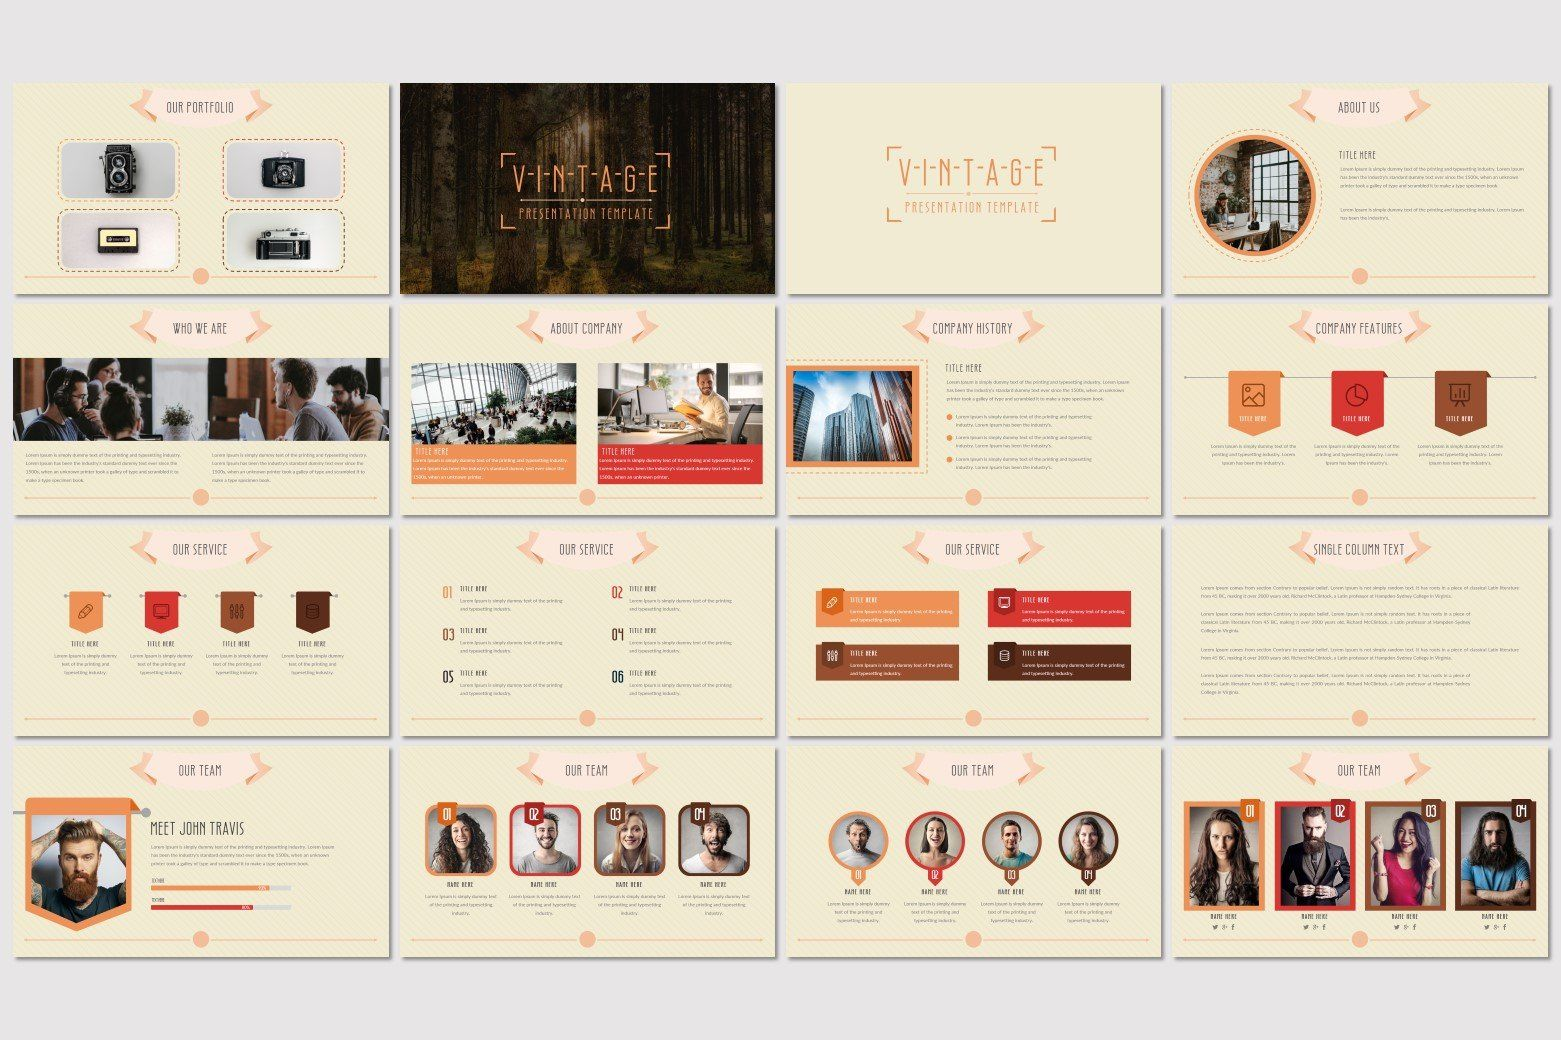 Vintage Powerpoint Template Powerpoint Templates Presentation Design Template Presentation Templates